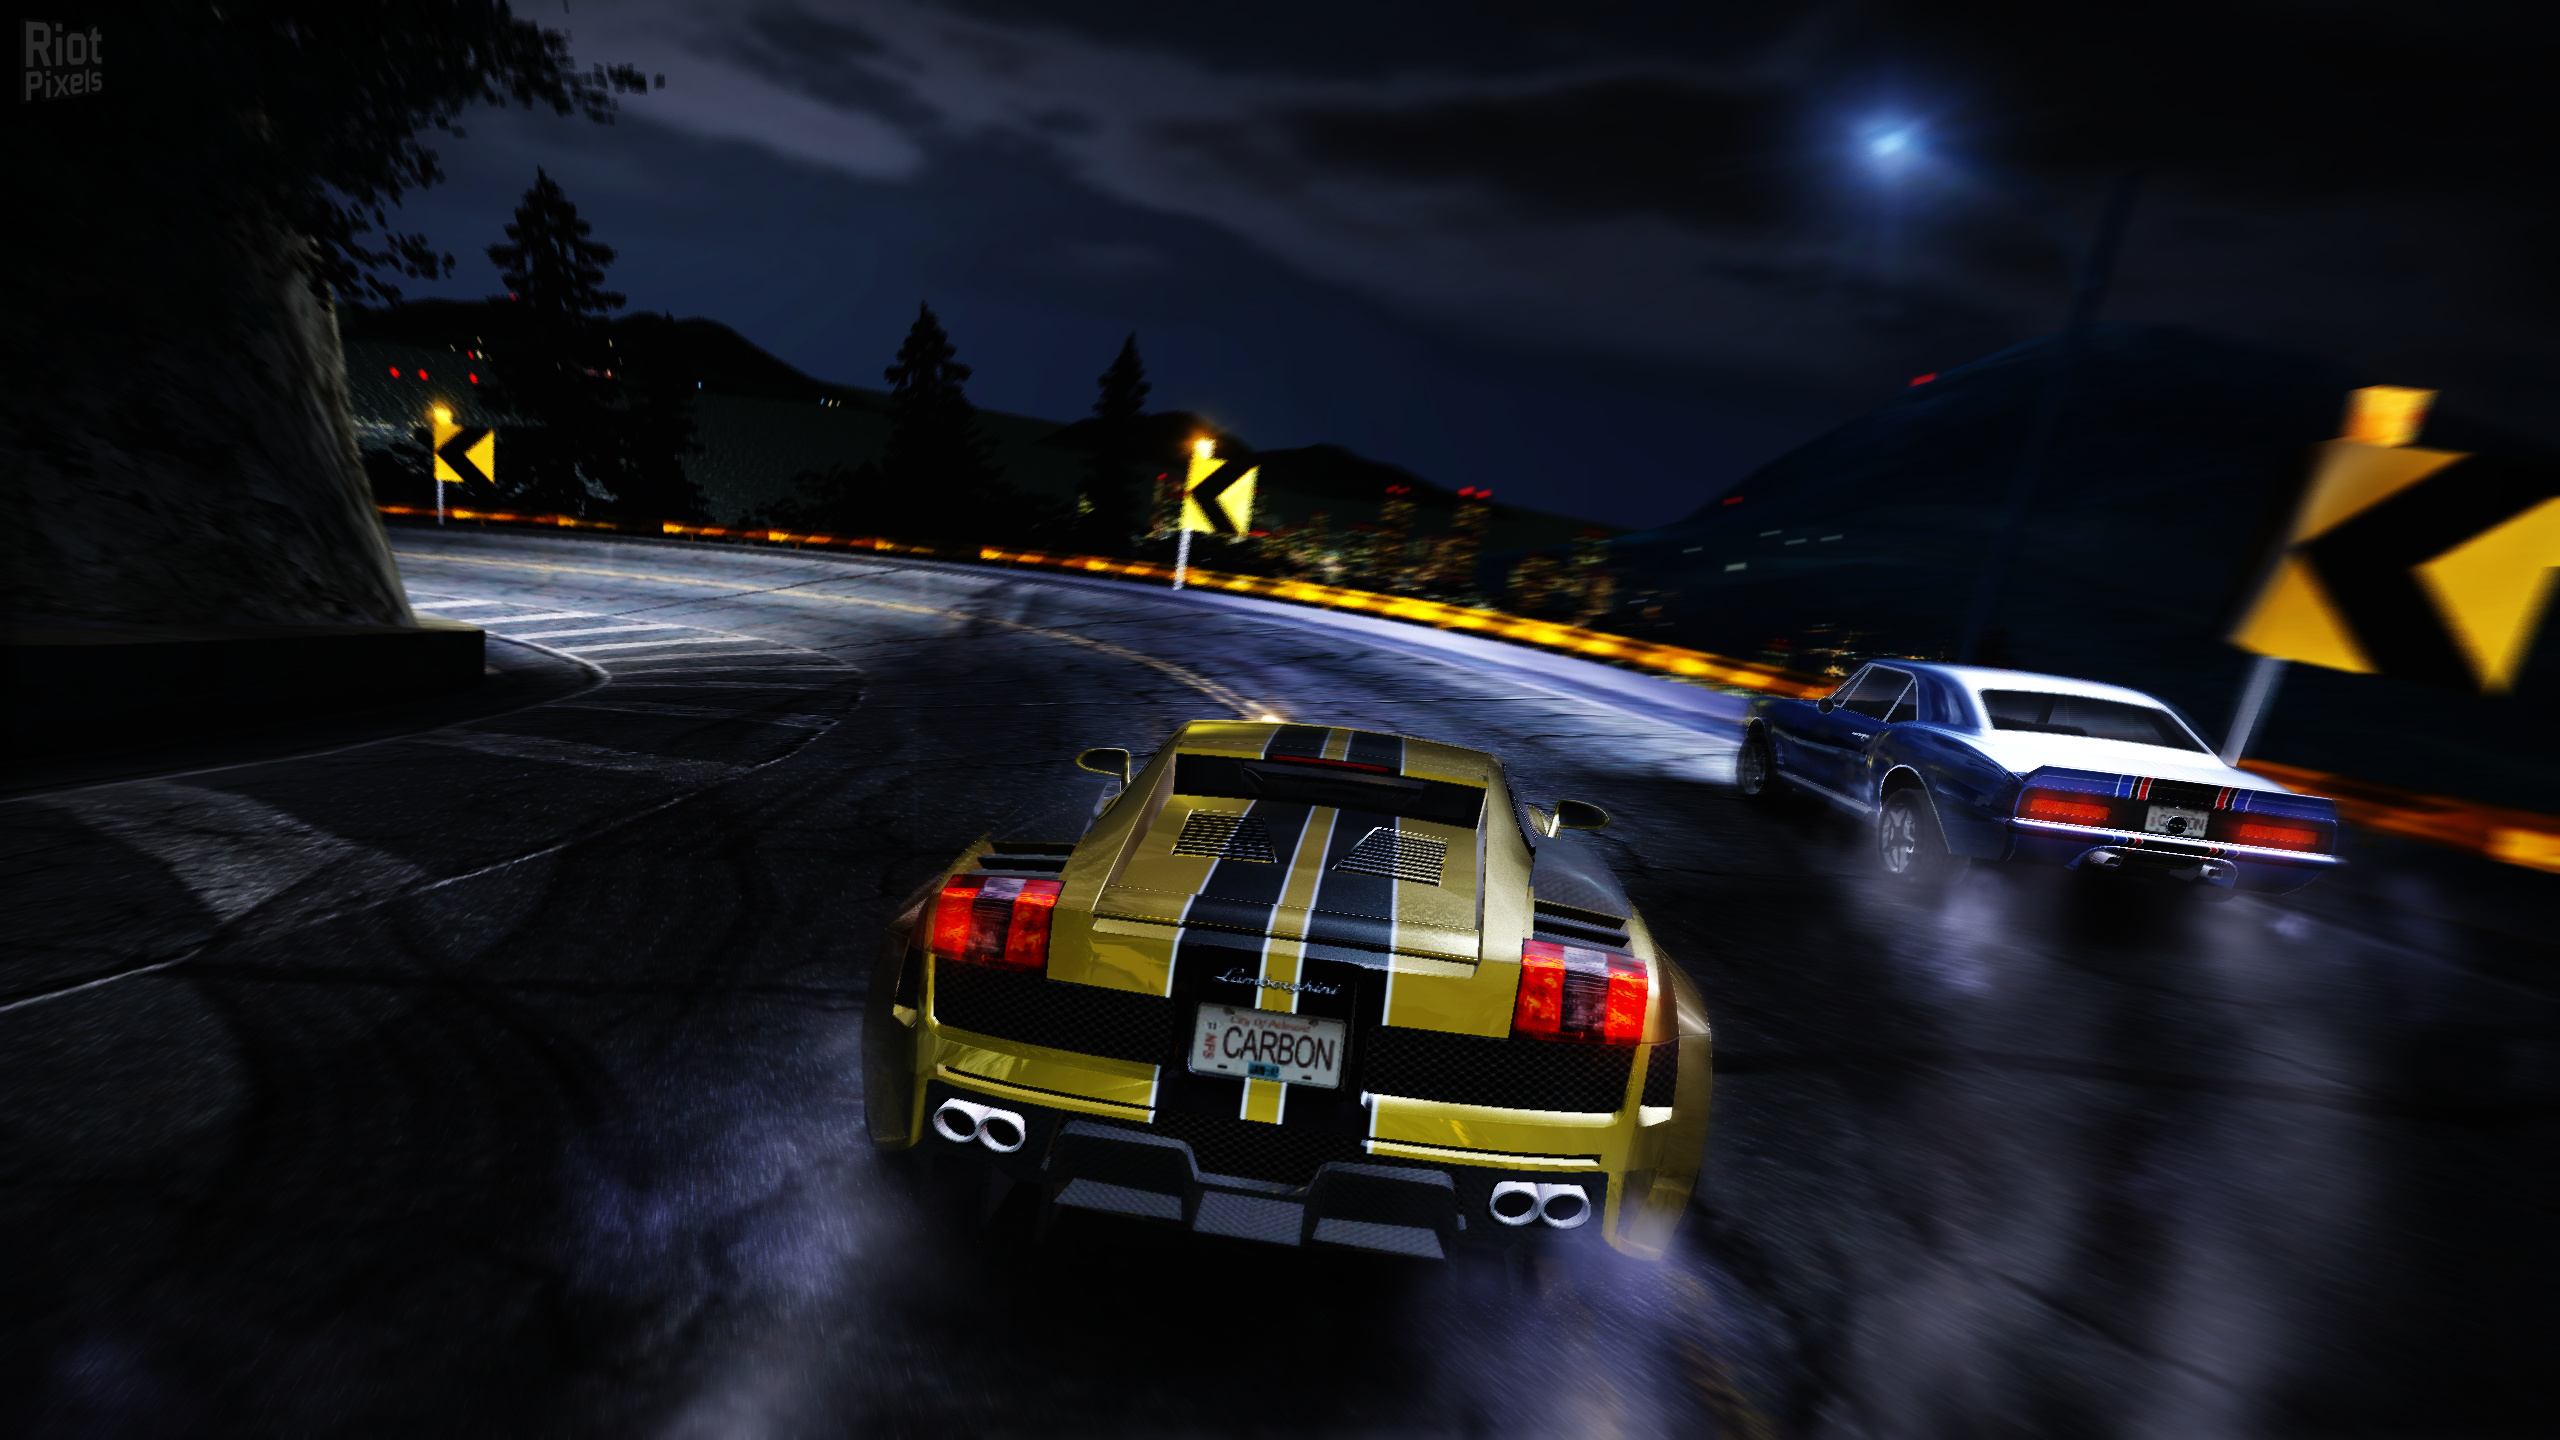 Need for speed carbon cheats, codes, unlockables - pcexotic career: cars